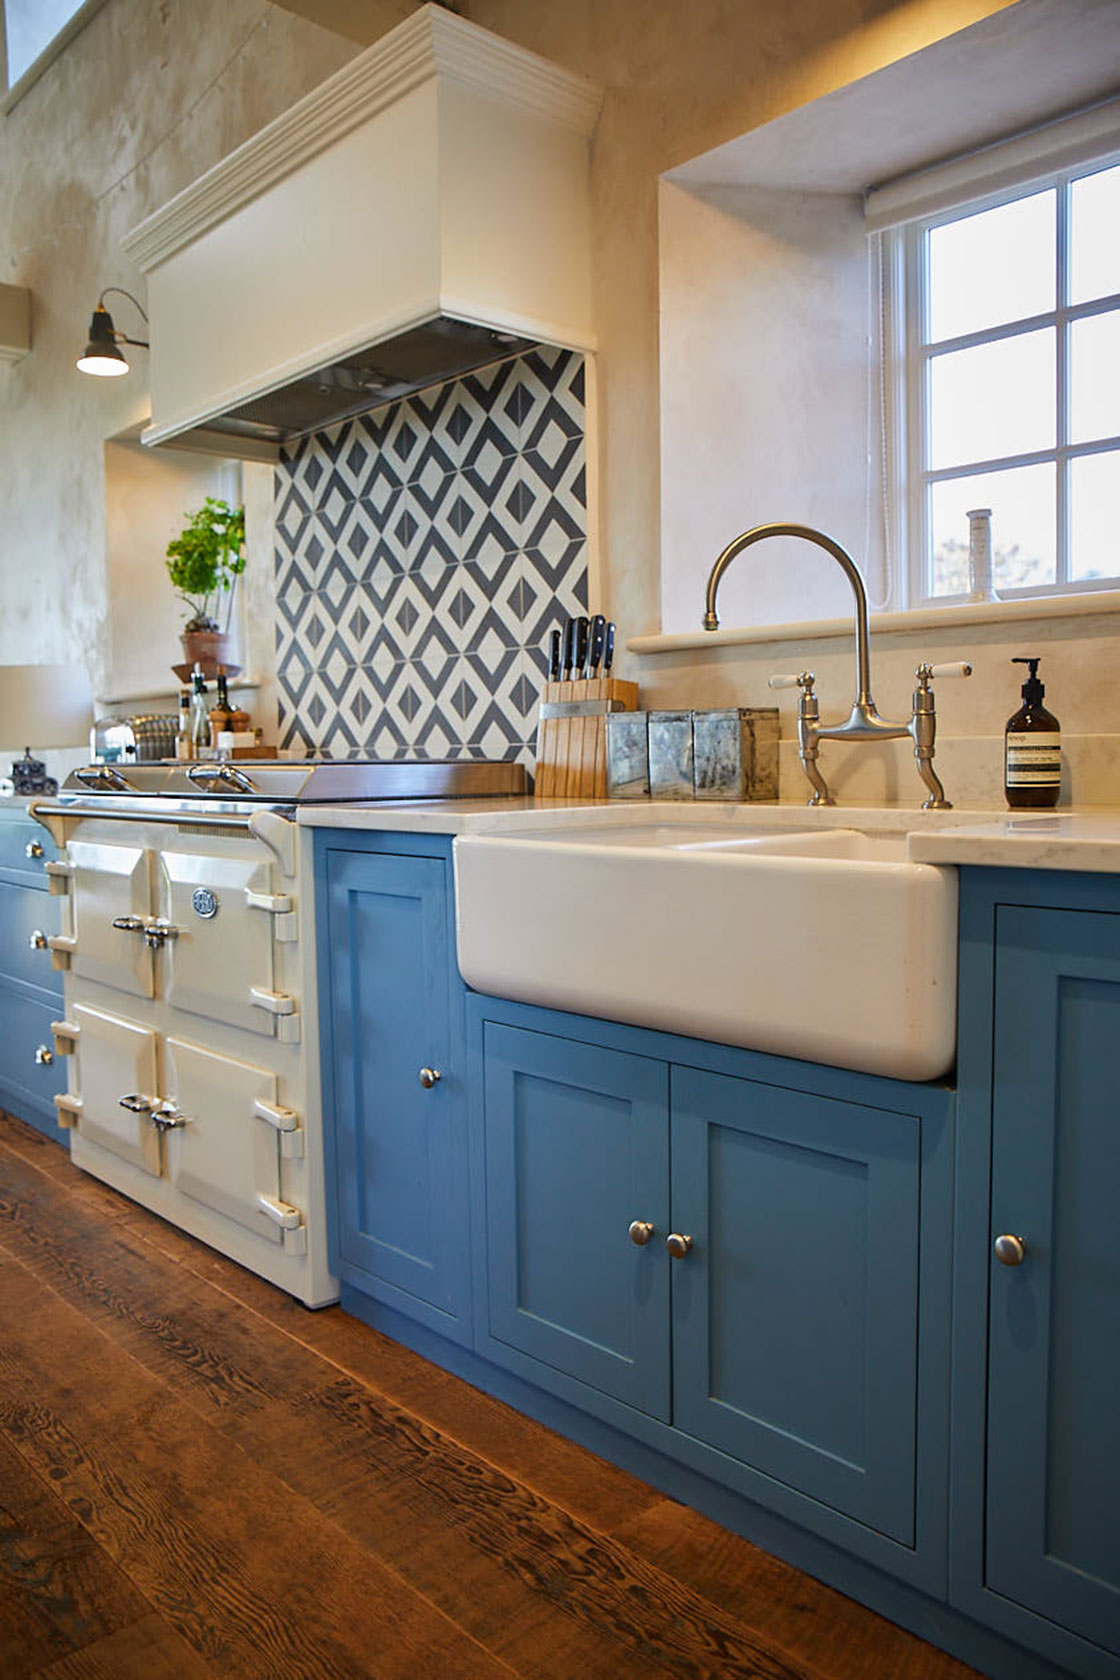 Bespoke light blue shaker kitchen cabinets with reclaimed pine wood floor